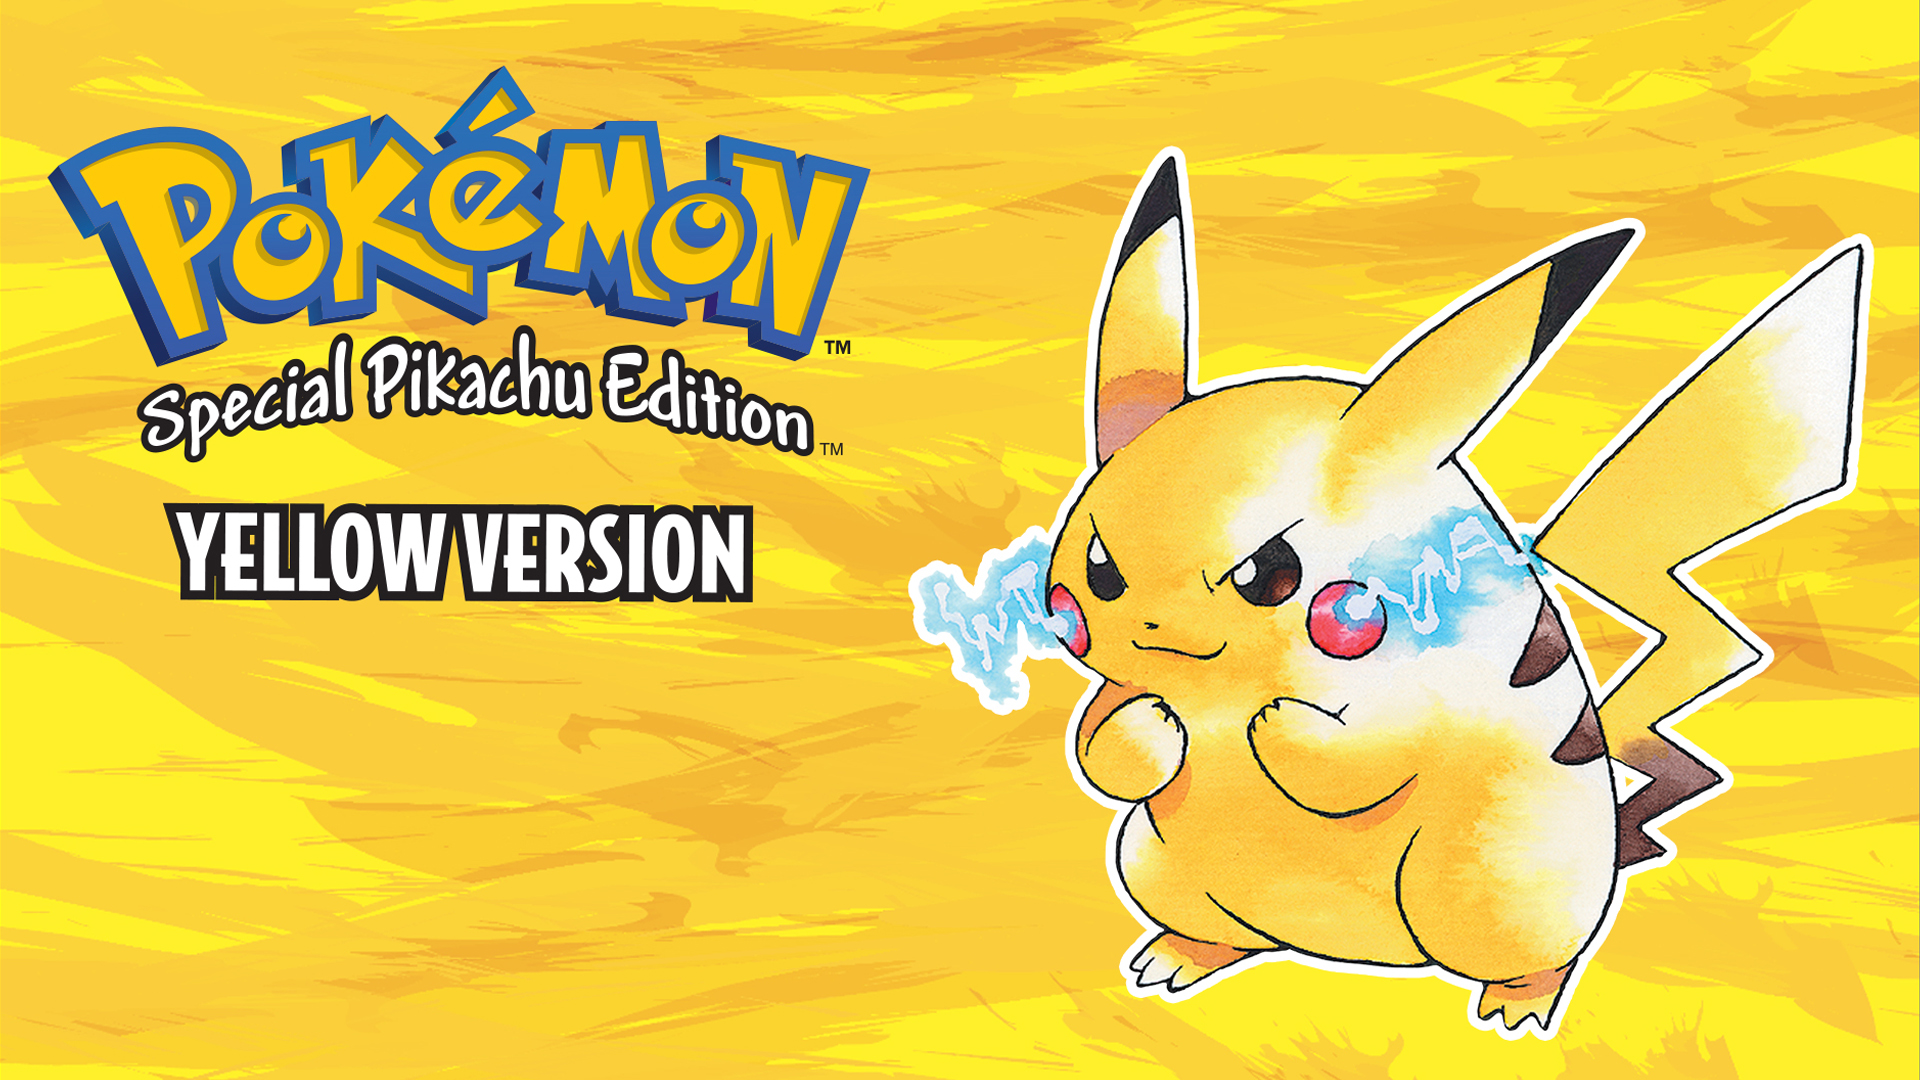 Pokemon Yellow Version Special Pikachu Edition Details Launchbox Games Database